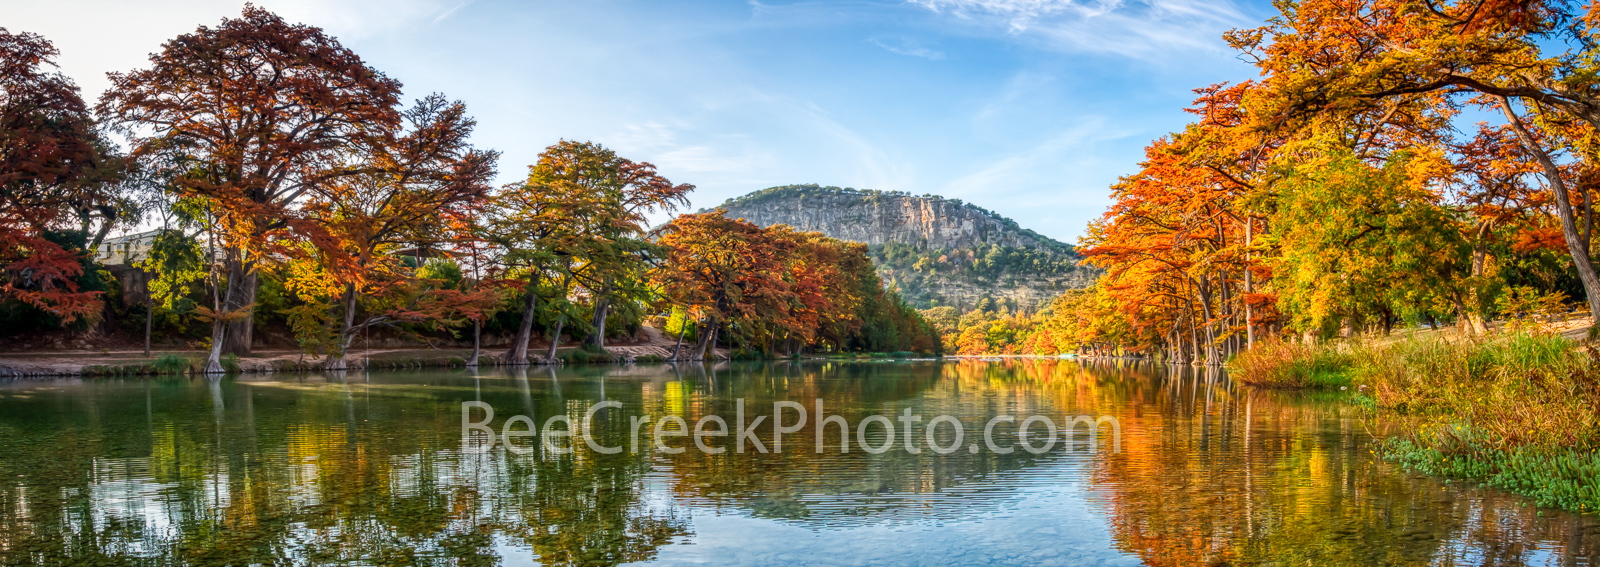 Scenic Fall Texas Hill Country Pano - We capture this scenic fall frio river pano on our first trip this year into the Texas...